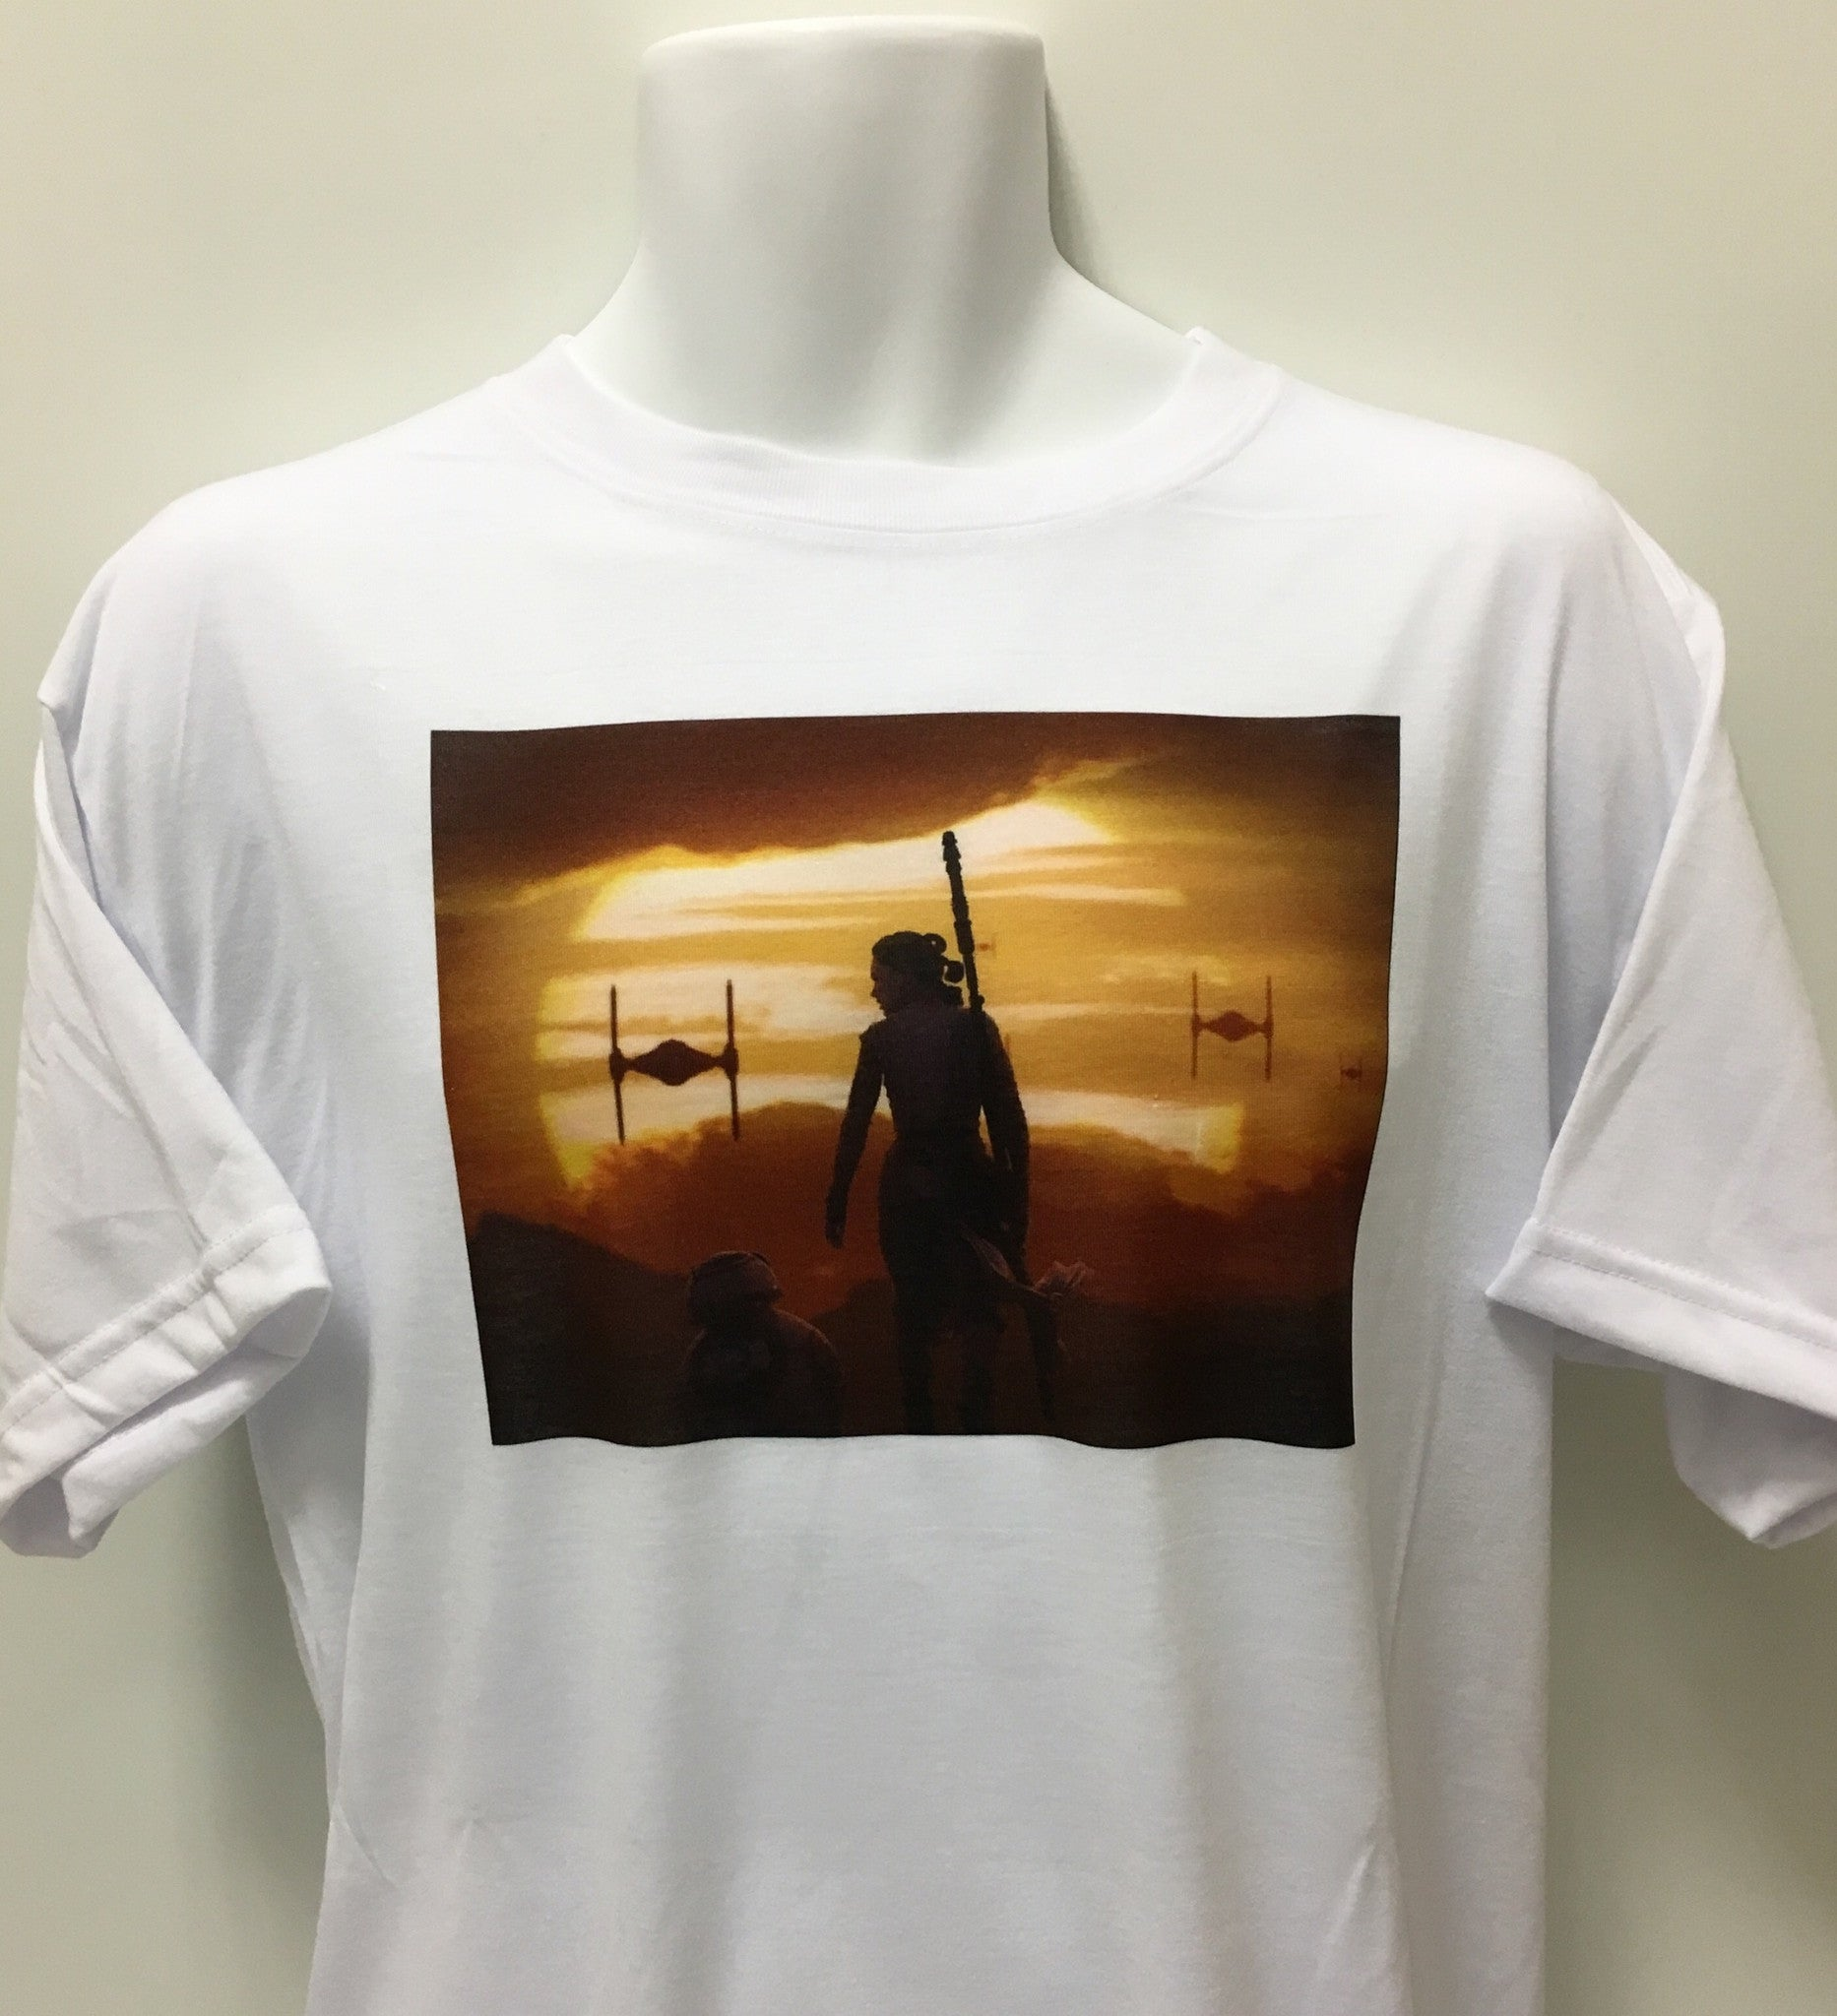 Star Wars: The Force Awakens T-Shirt